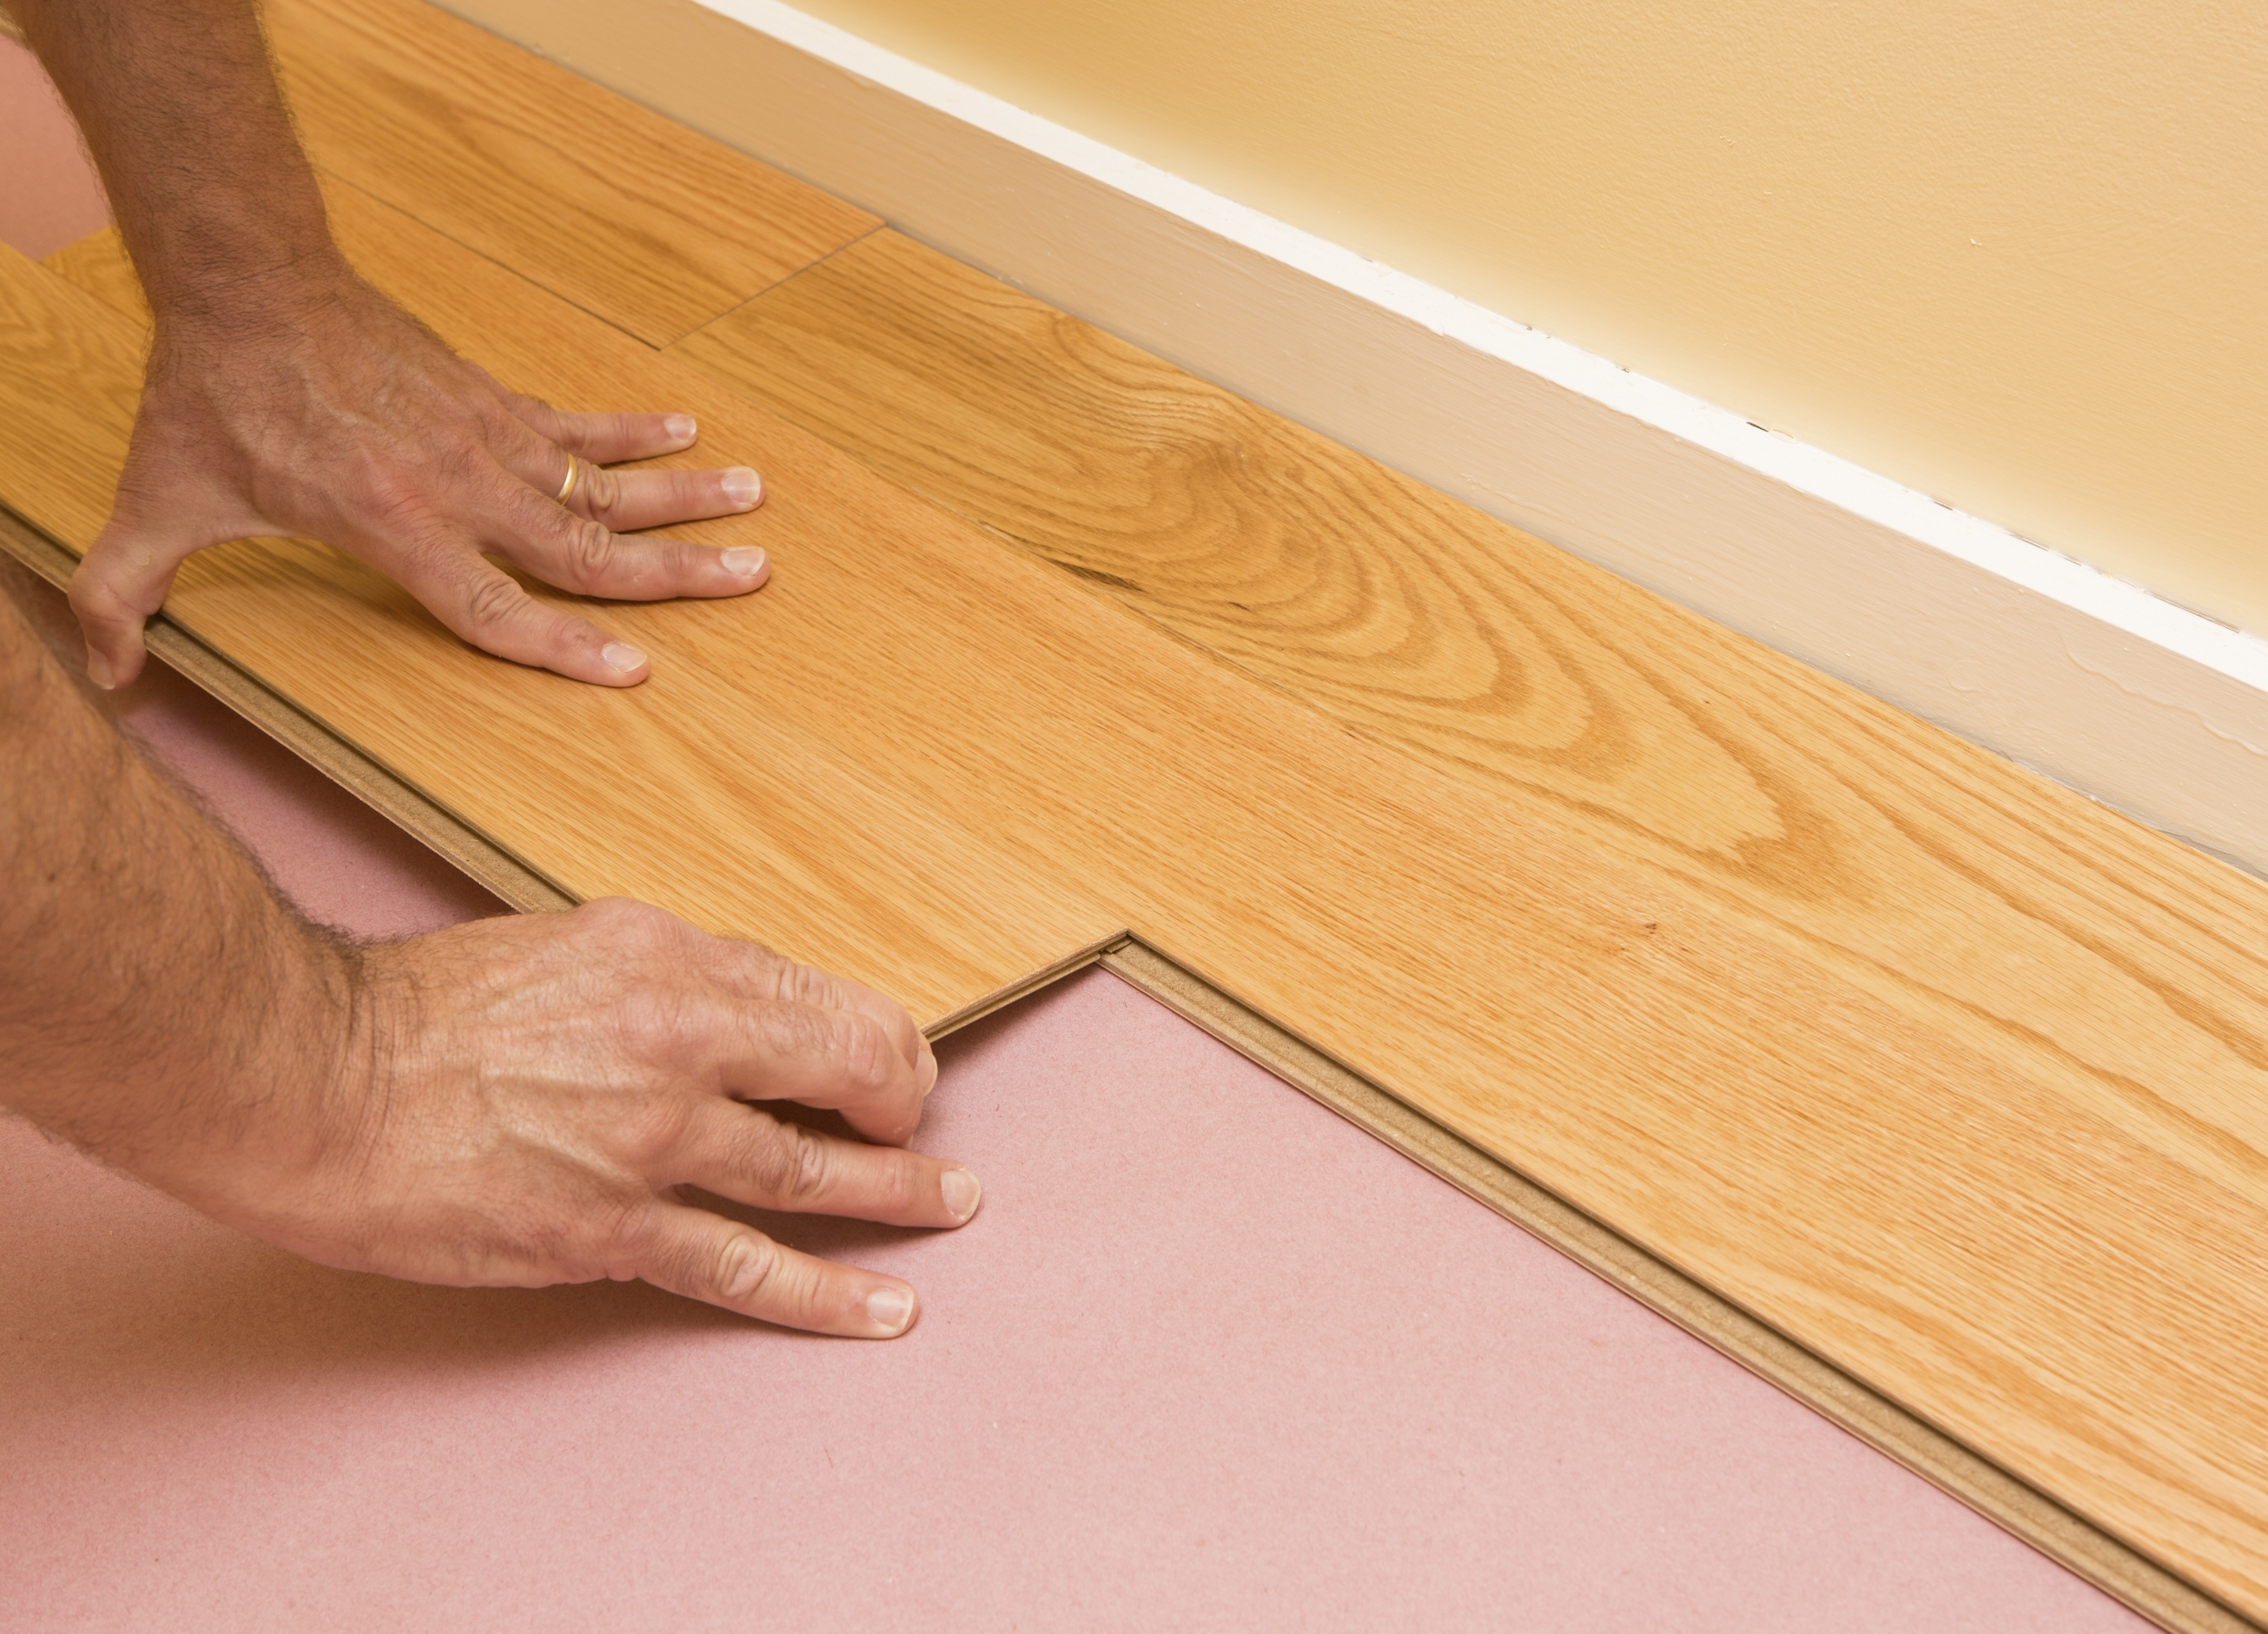 Best Underlayment For Engineered Wood Flooring On Concrete